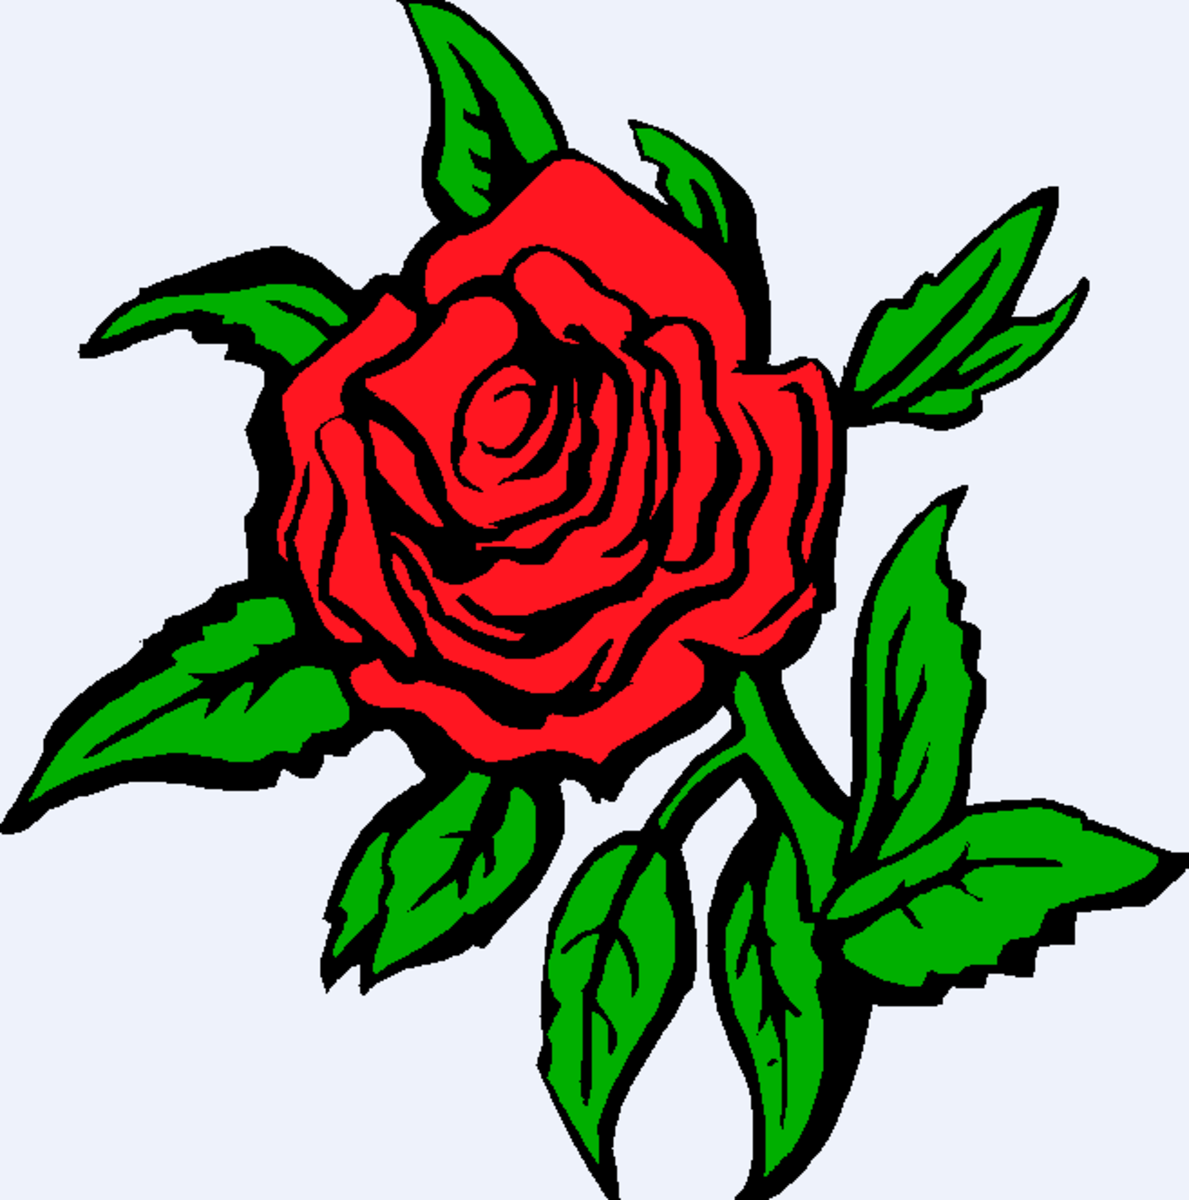 Red Rose with Many Leaves